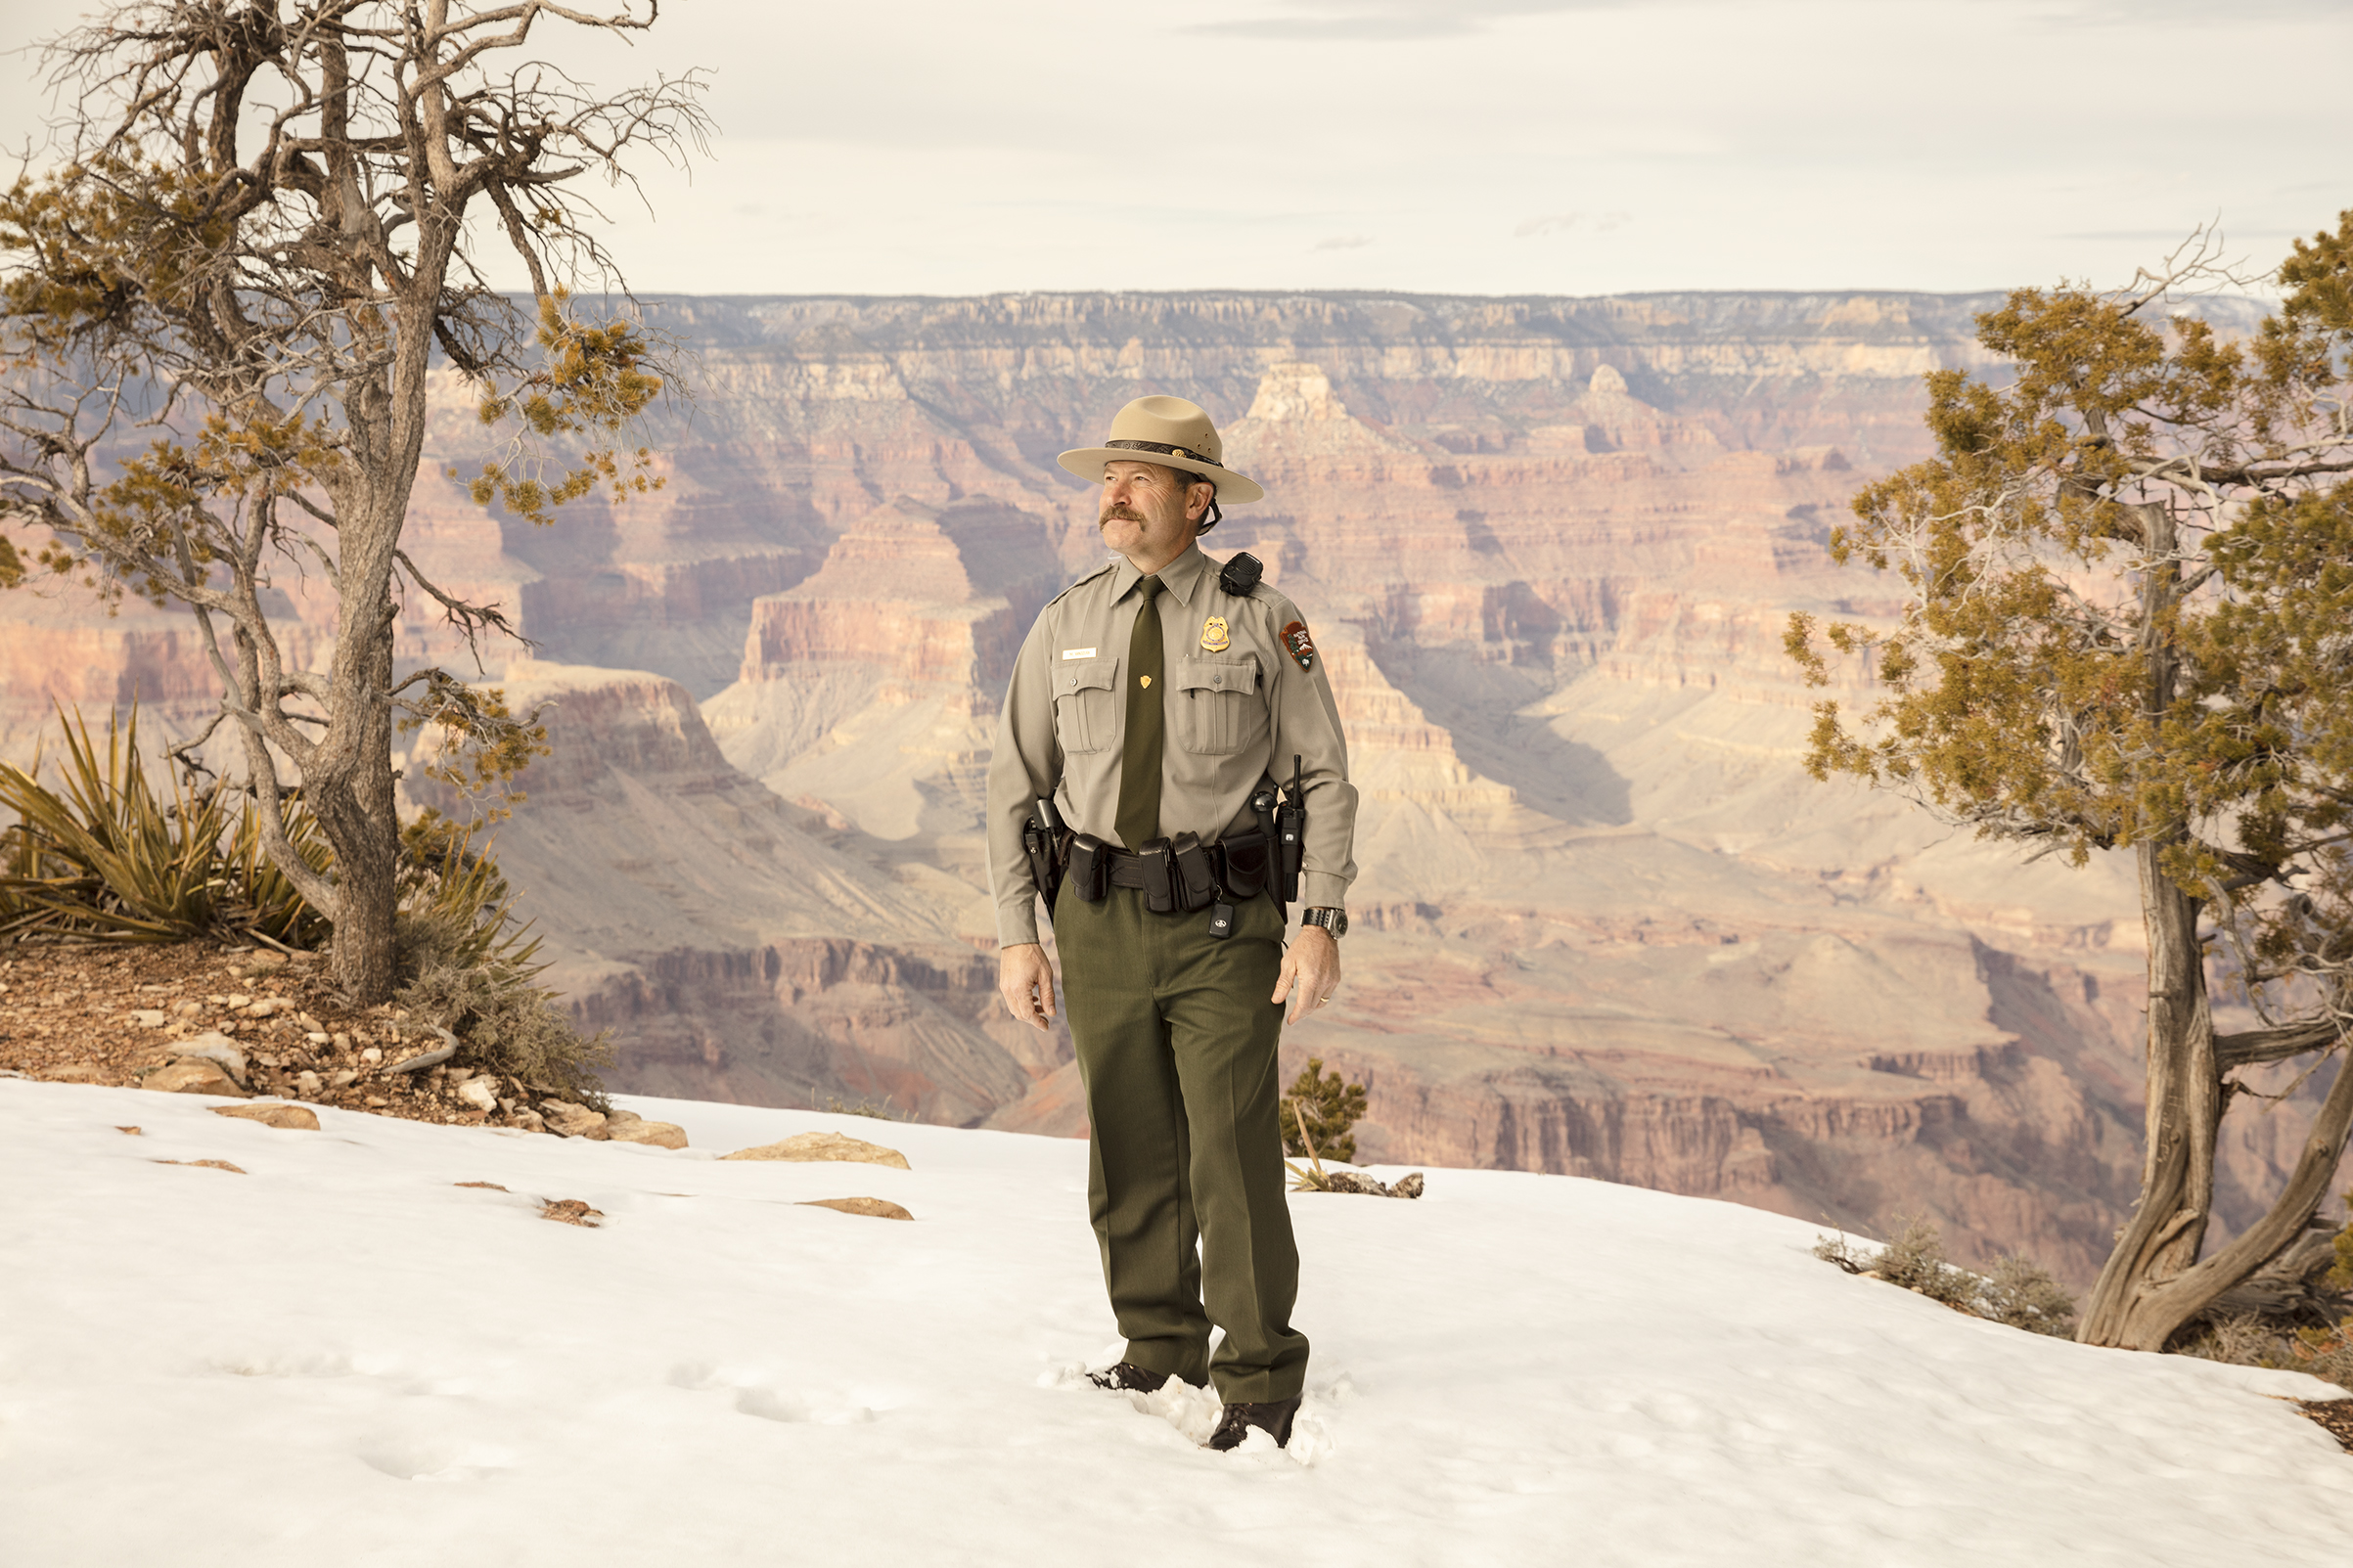 Matthew Vandzura, chief ranger at Grand Canyon National Park, poses for a portrait on March 1